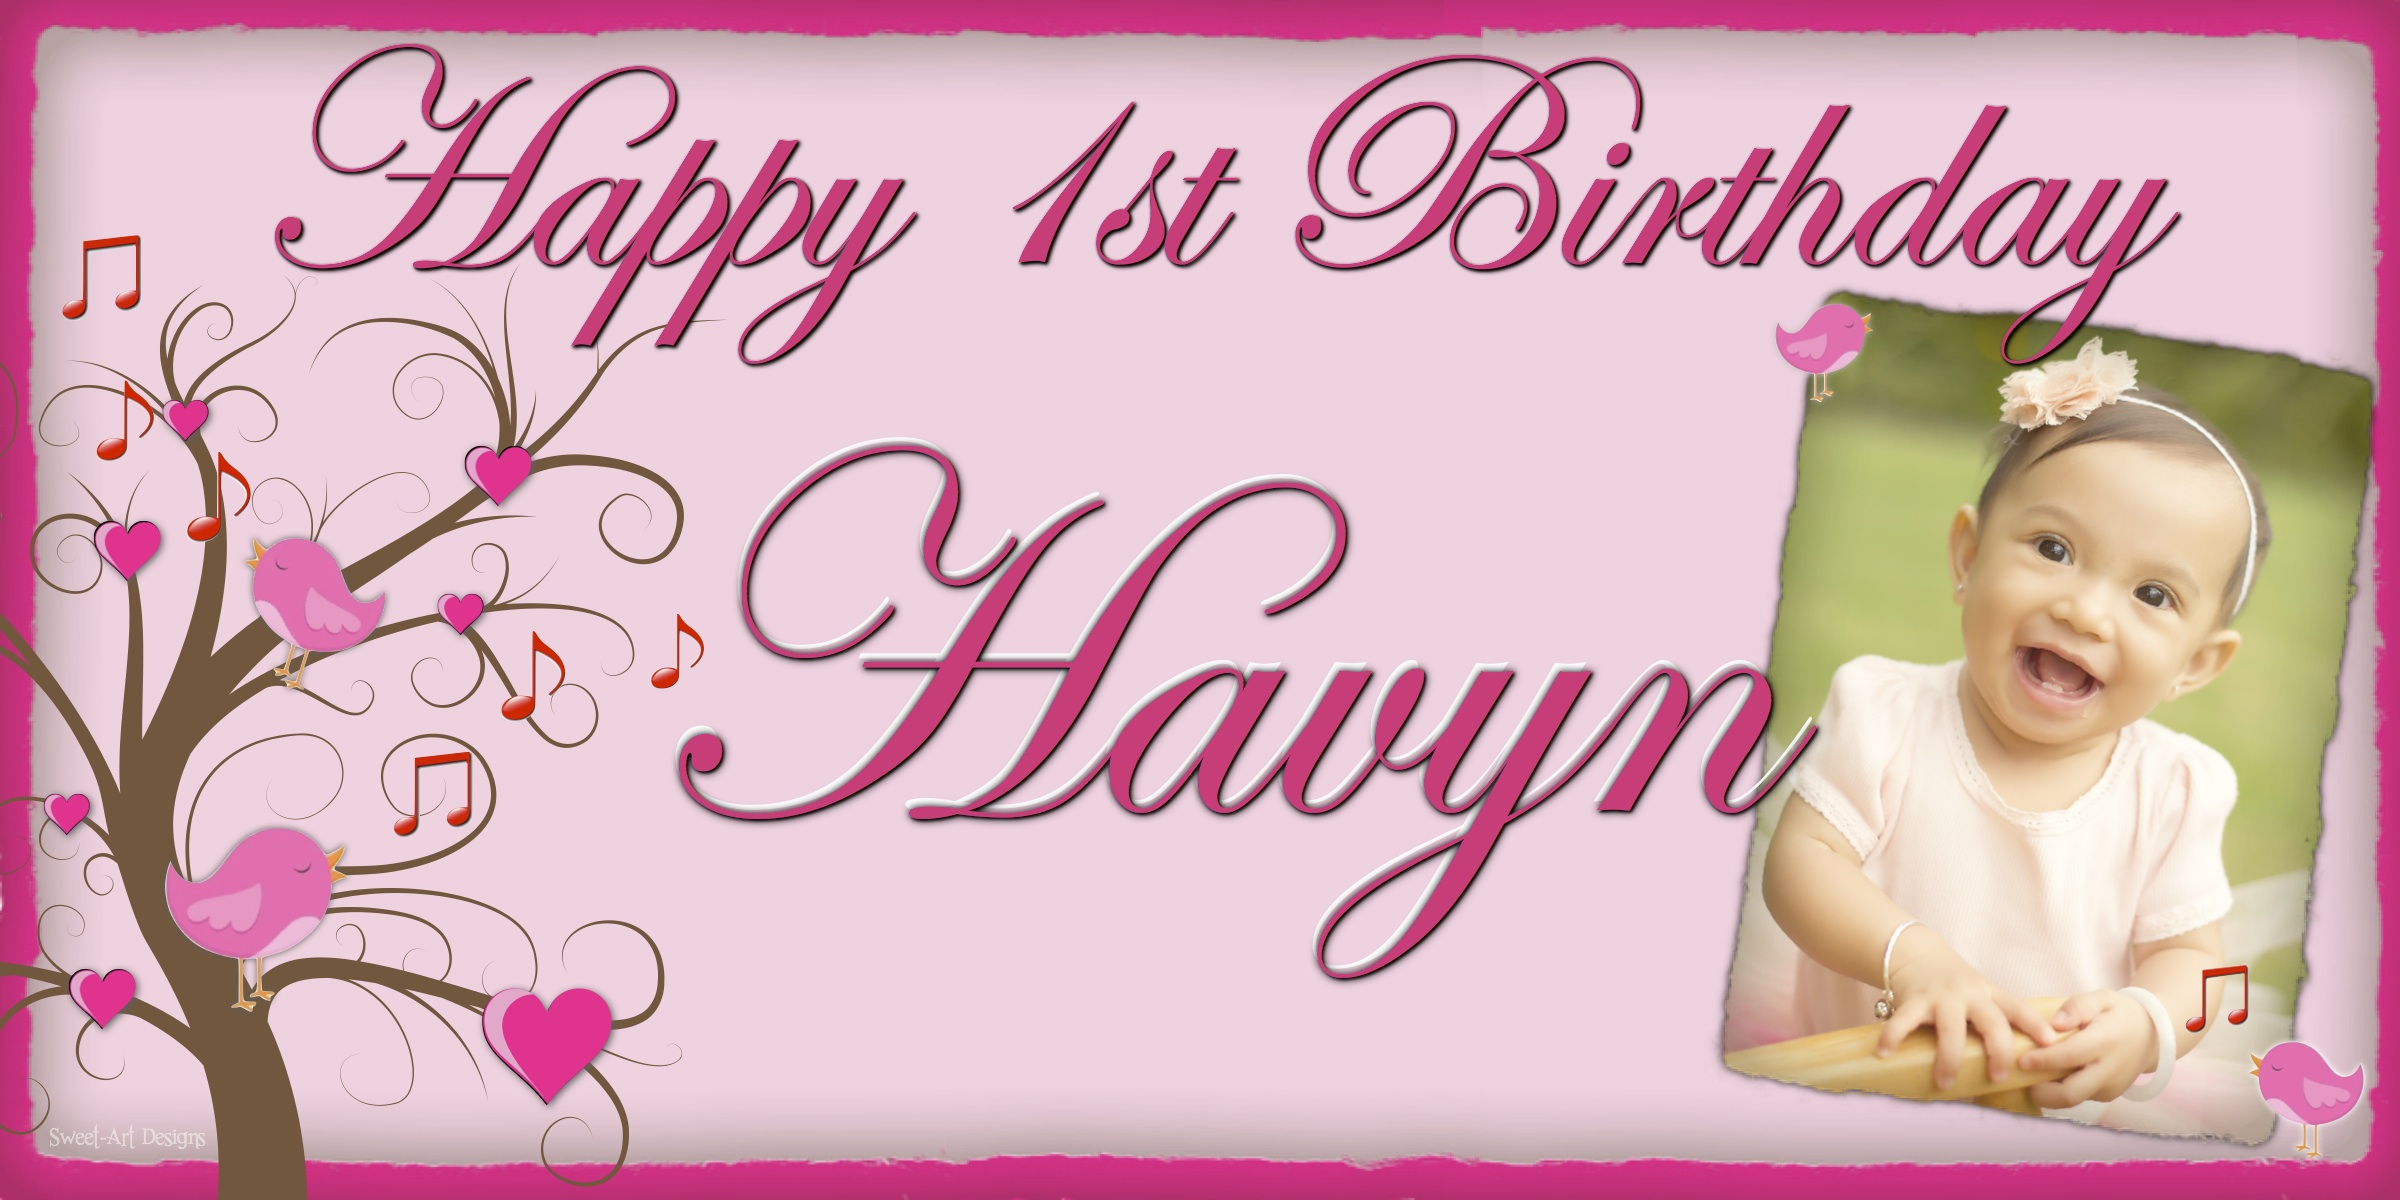 birthday banner with picture ; final-e2809c4ft-x-8ft-danlyn-casil-v5e2809d